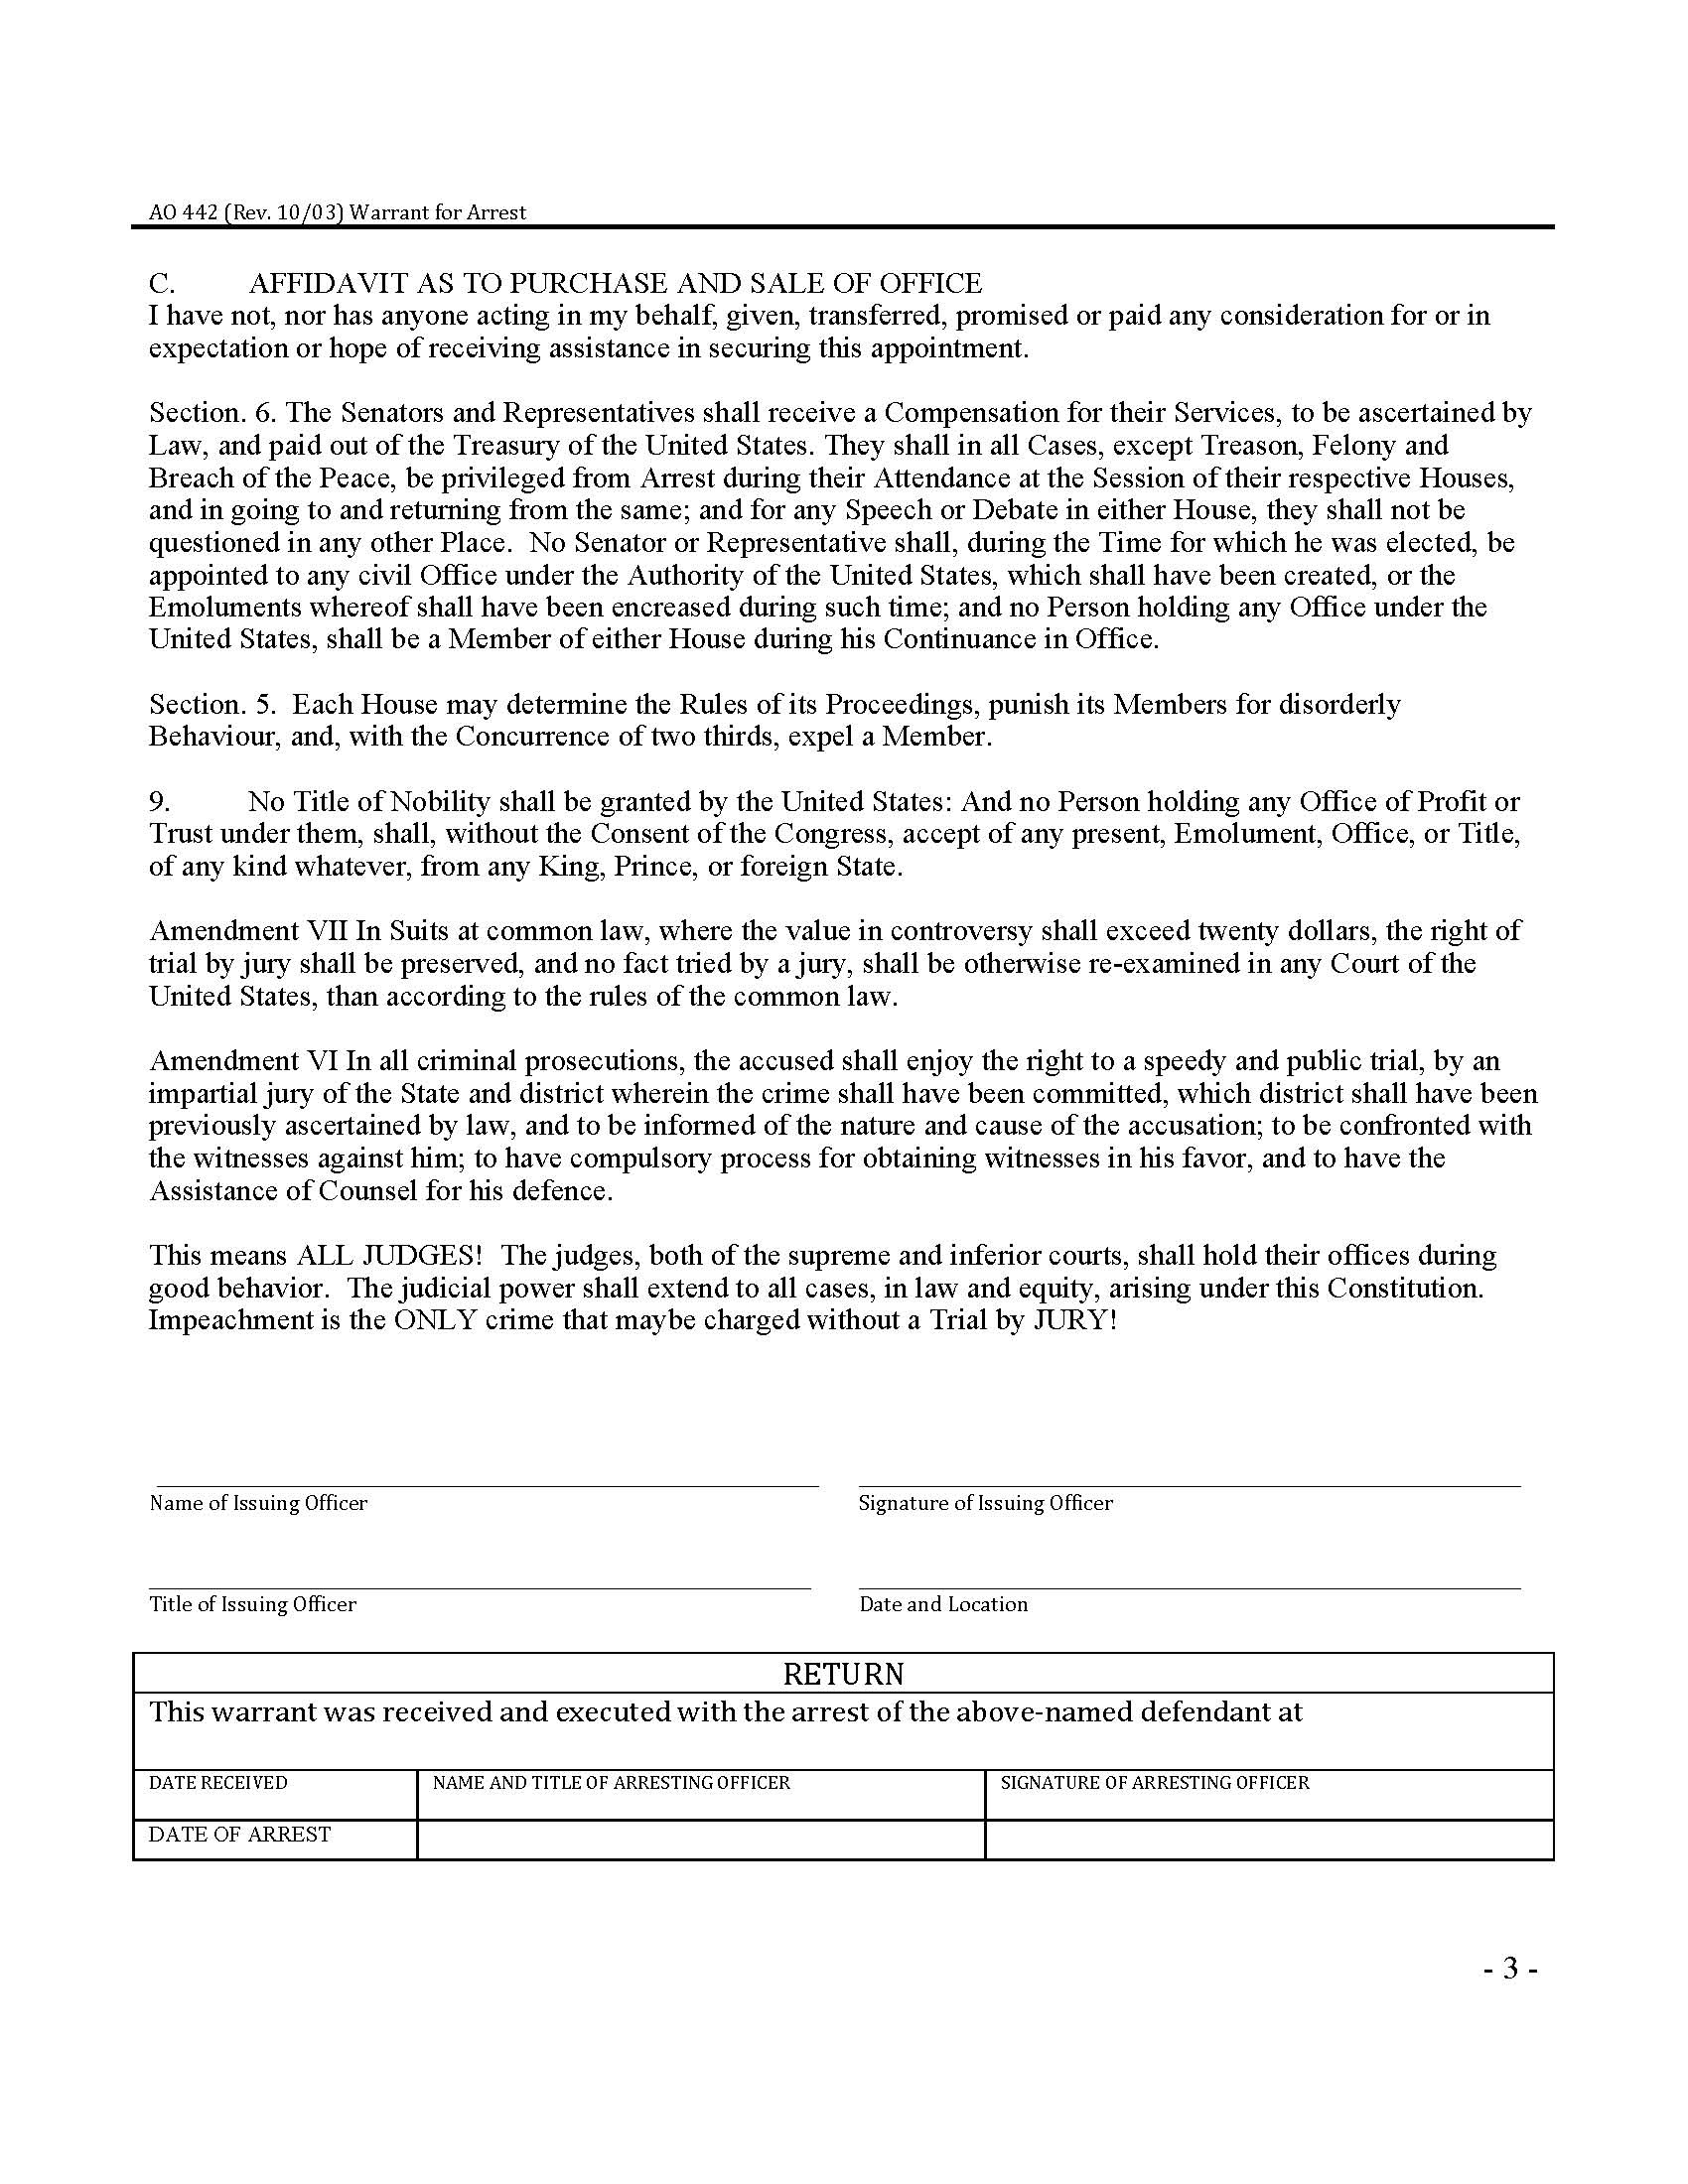 Arrest warrant template 3 foreign arrest warrant template warrant for arrest form ao 422 public officer scanned retina thecheapjerseys Images